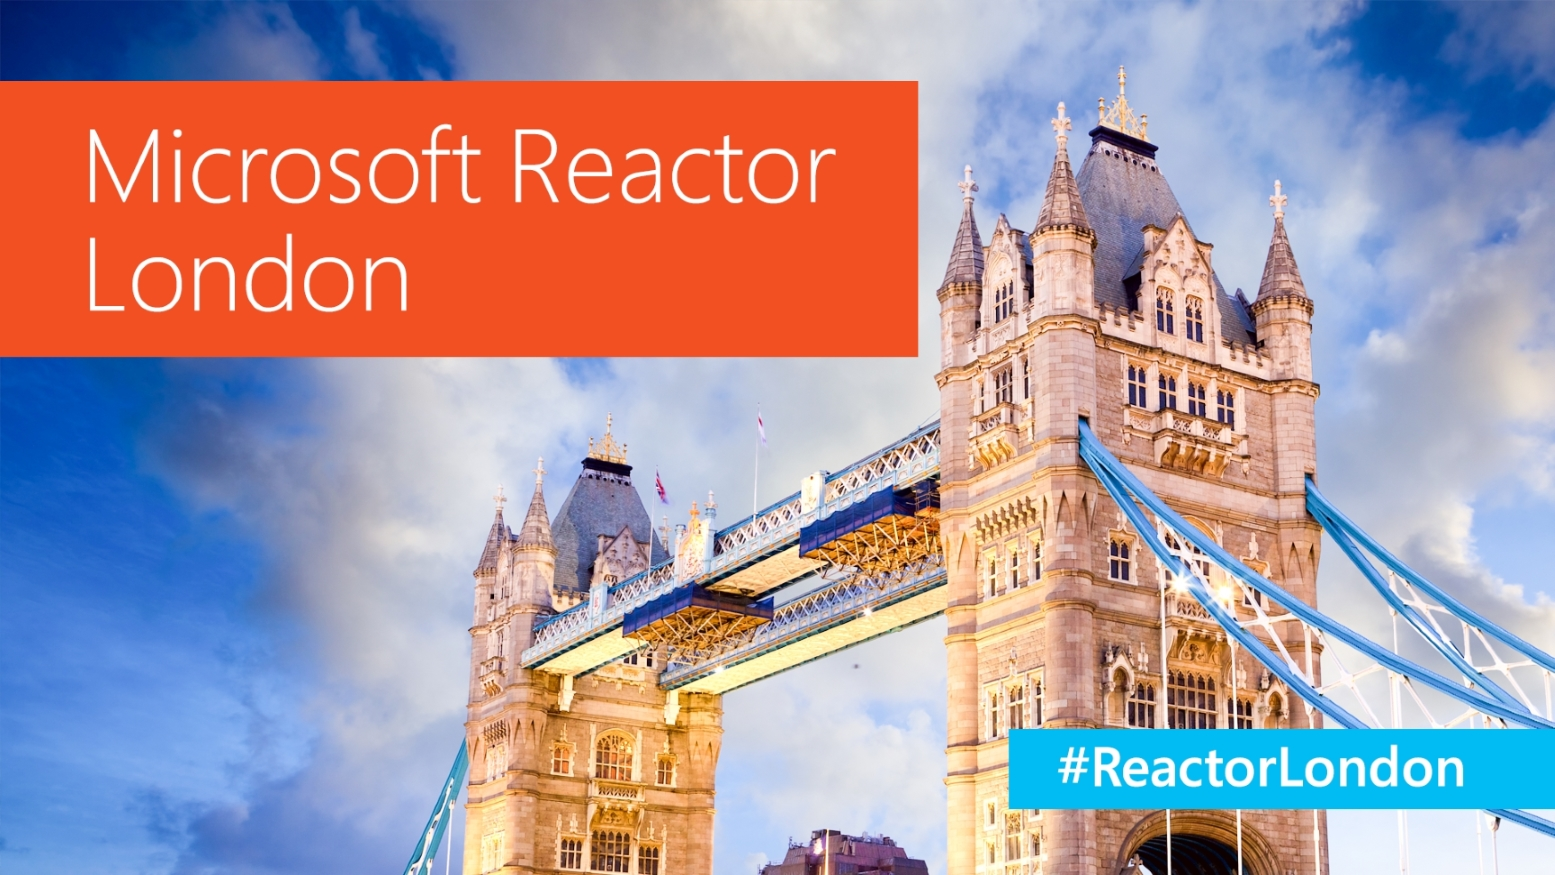 https://reactorext.blob.core.windows.net/images/01reactorbloglondonv1_636870632358258872.jpg